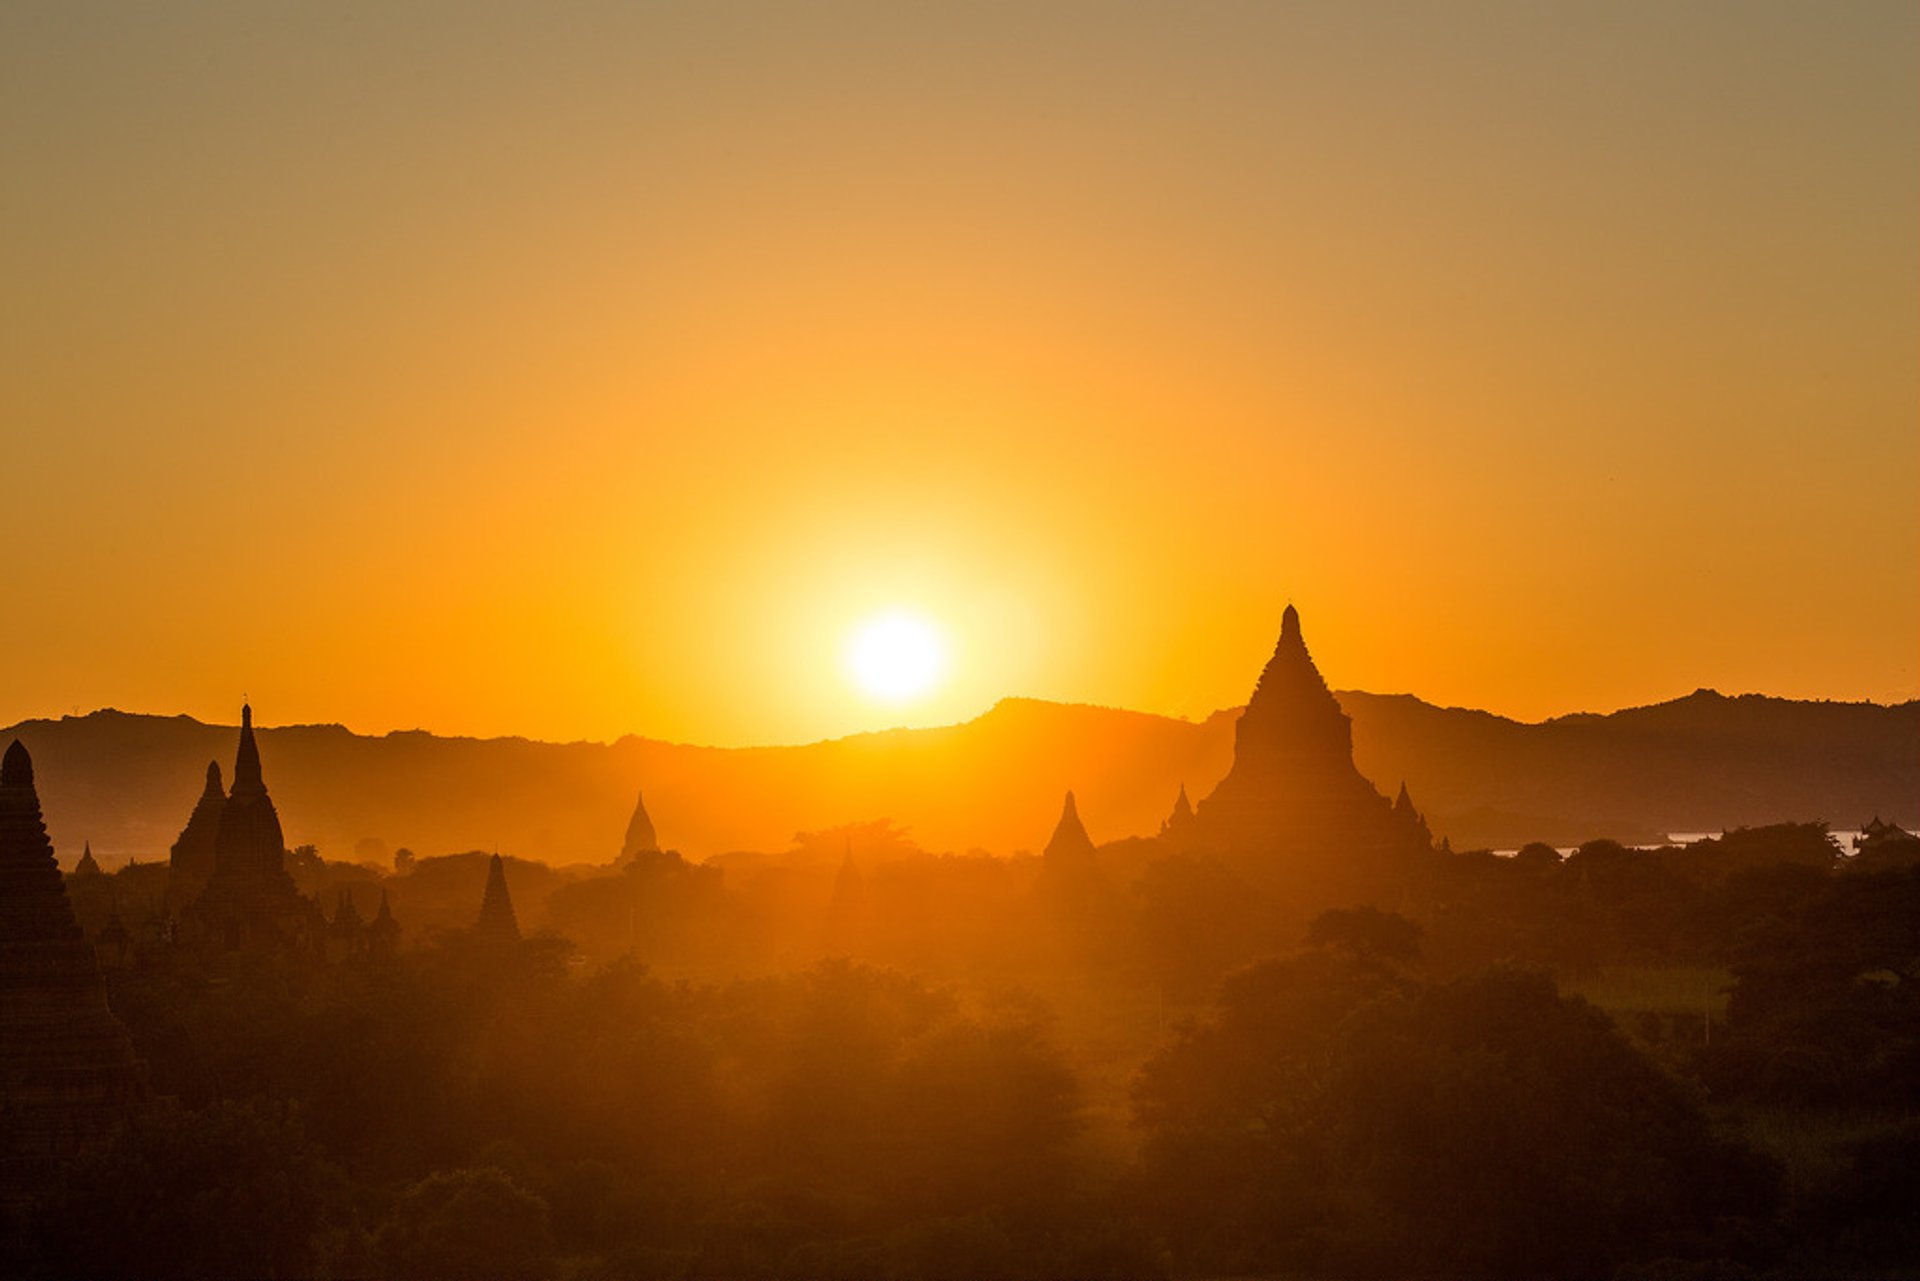 Sunset over Old Bagan 2020